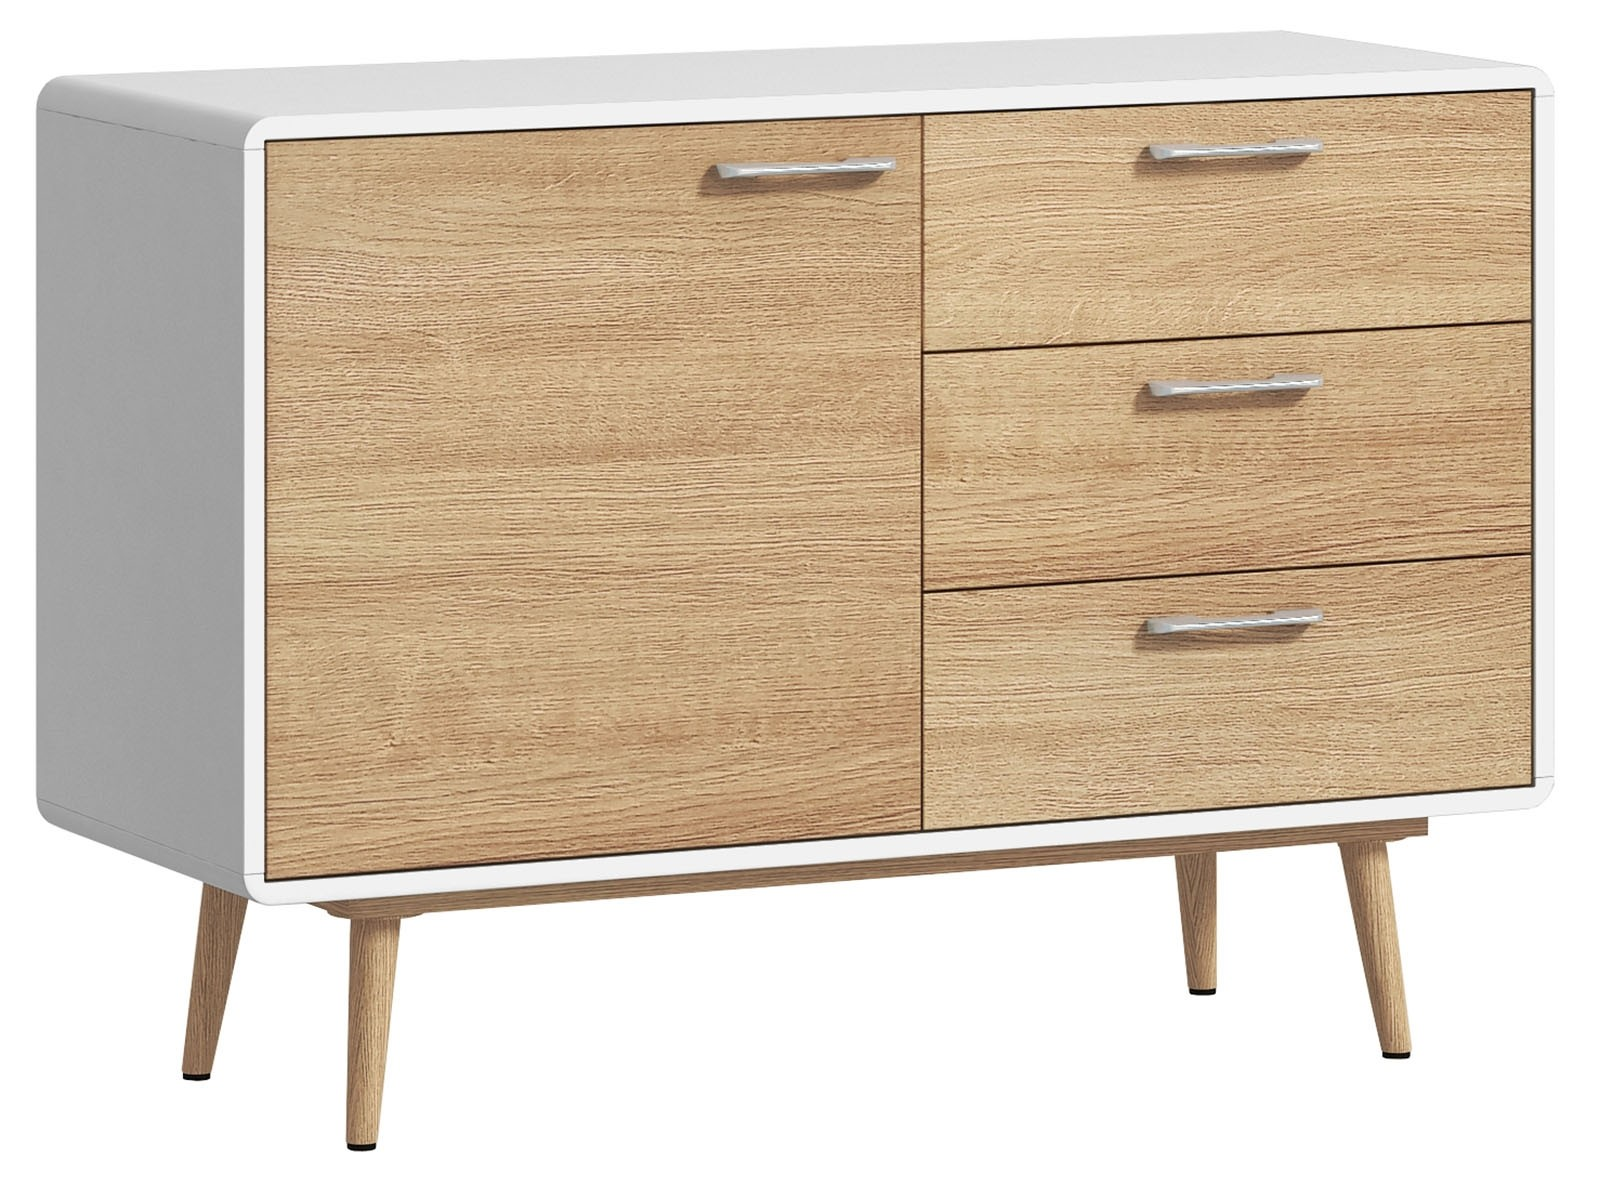 CONTEMPORARY Small Sideboard - White